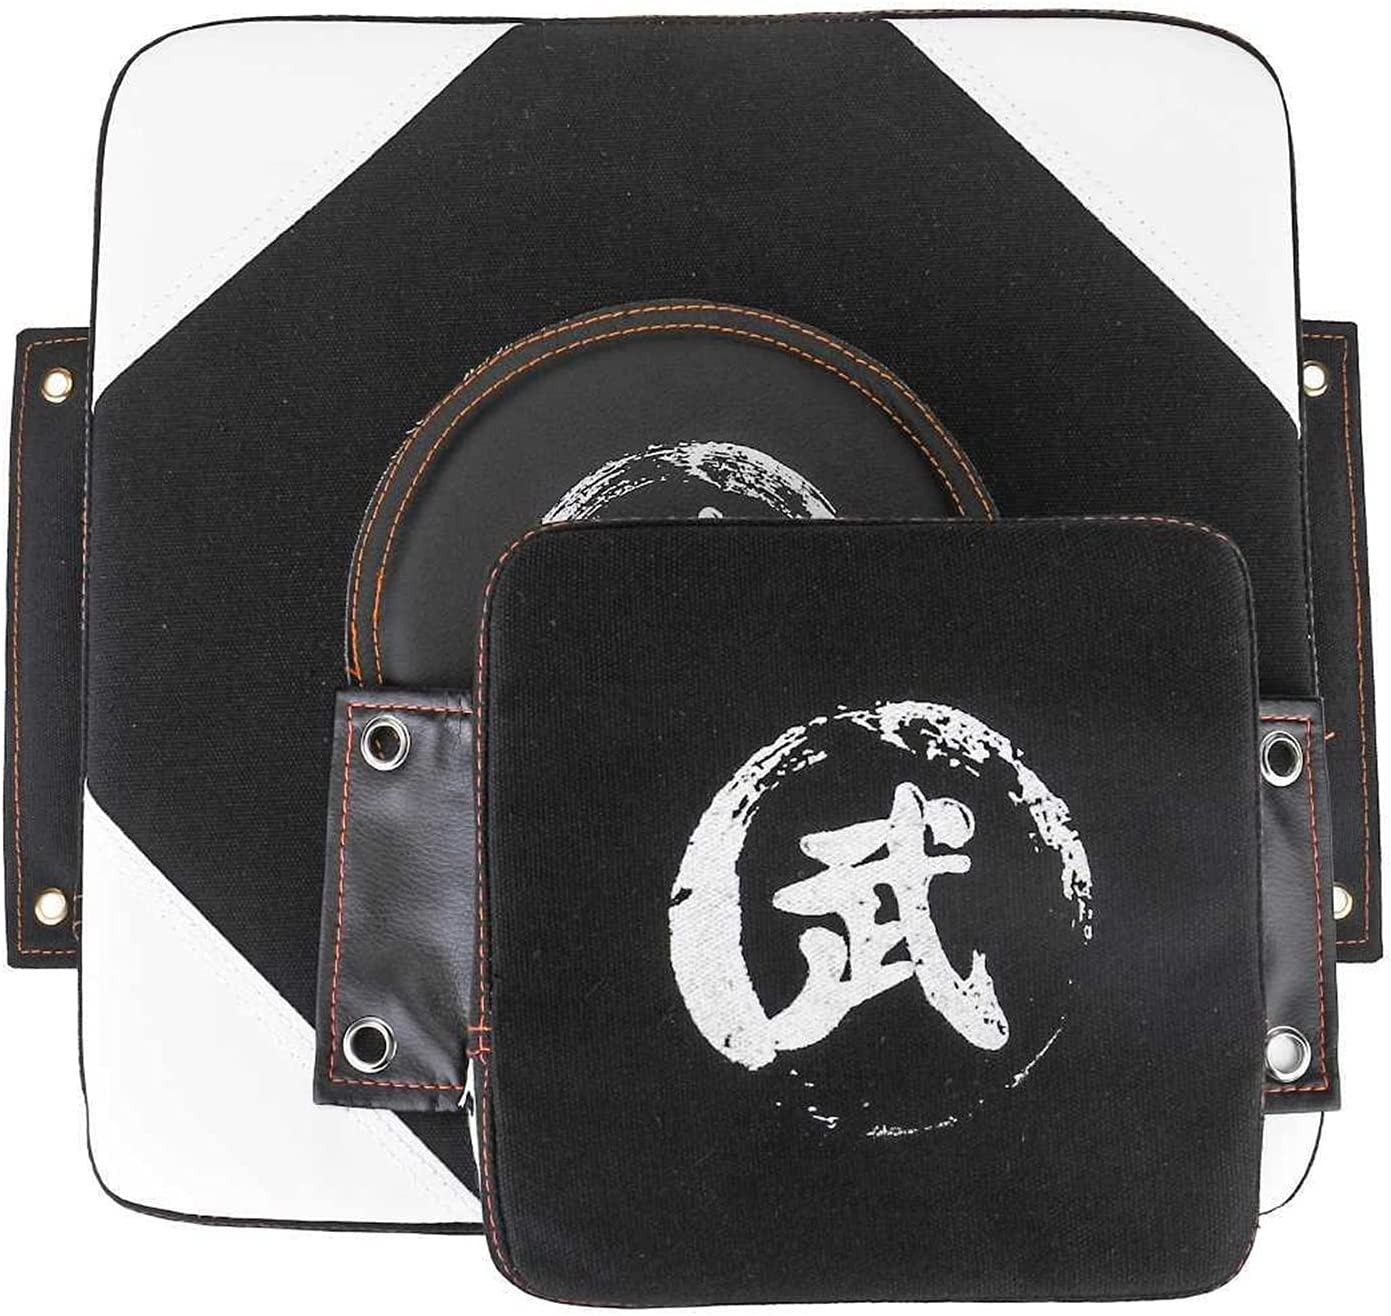 FFOO Boxing Bag Purchase Outstanding Punching Lifting Weight Bags Pad